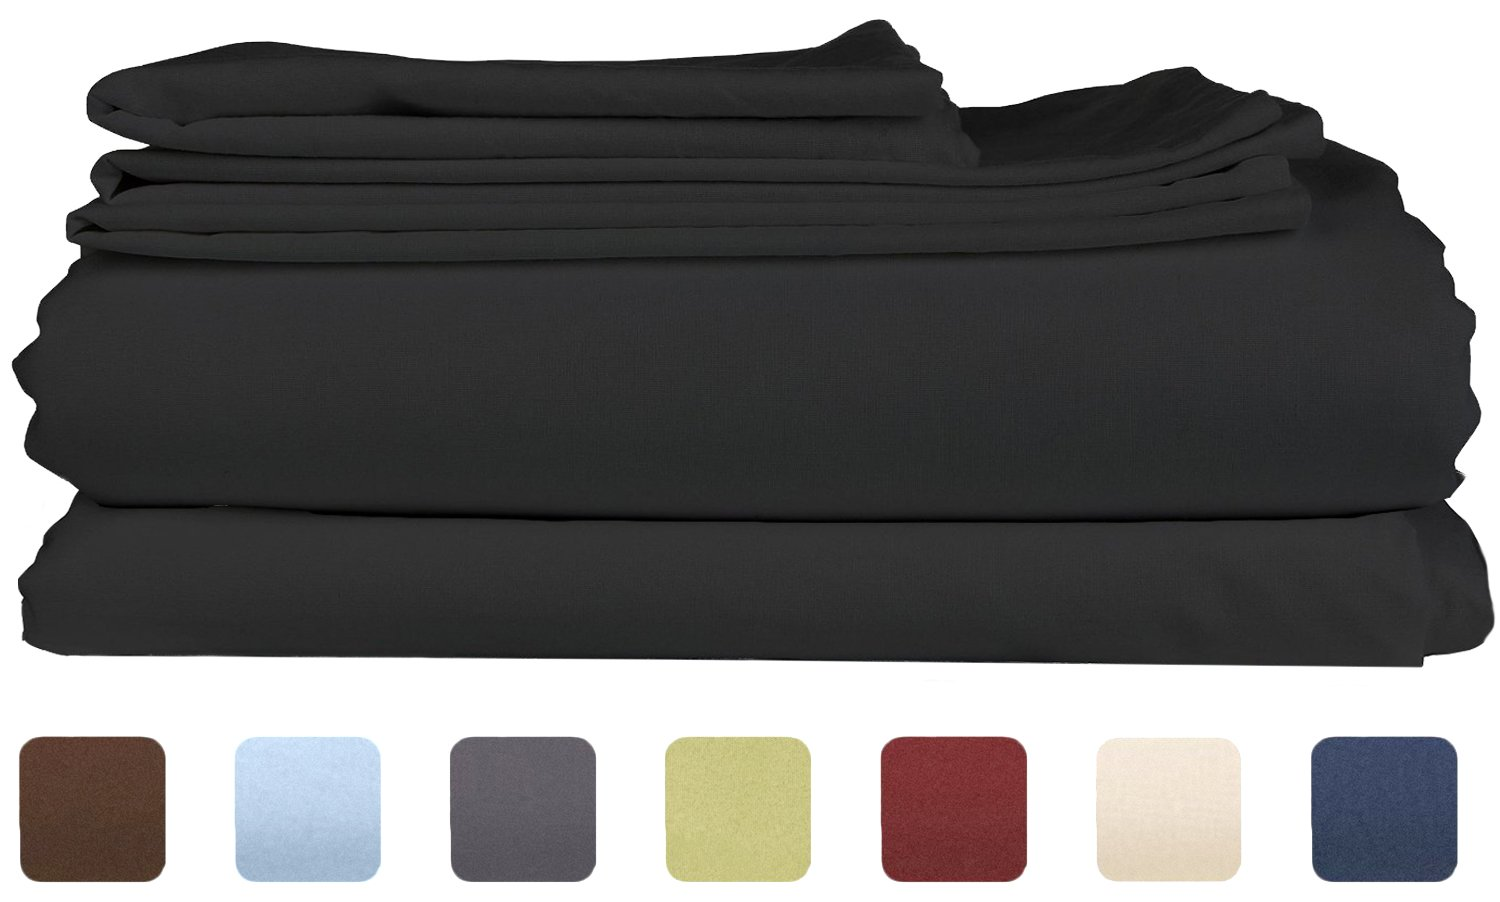 Queen Size Sheet Set - 6 Piece Set - Hotel Luxury Black Bed Sheets